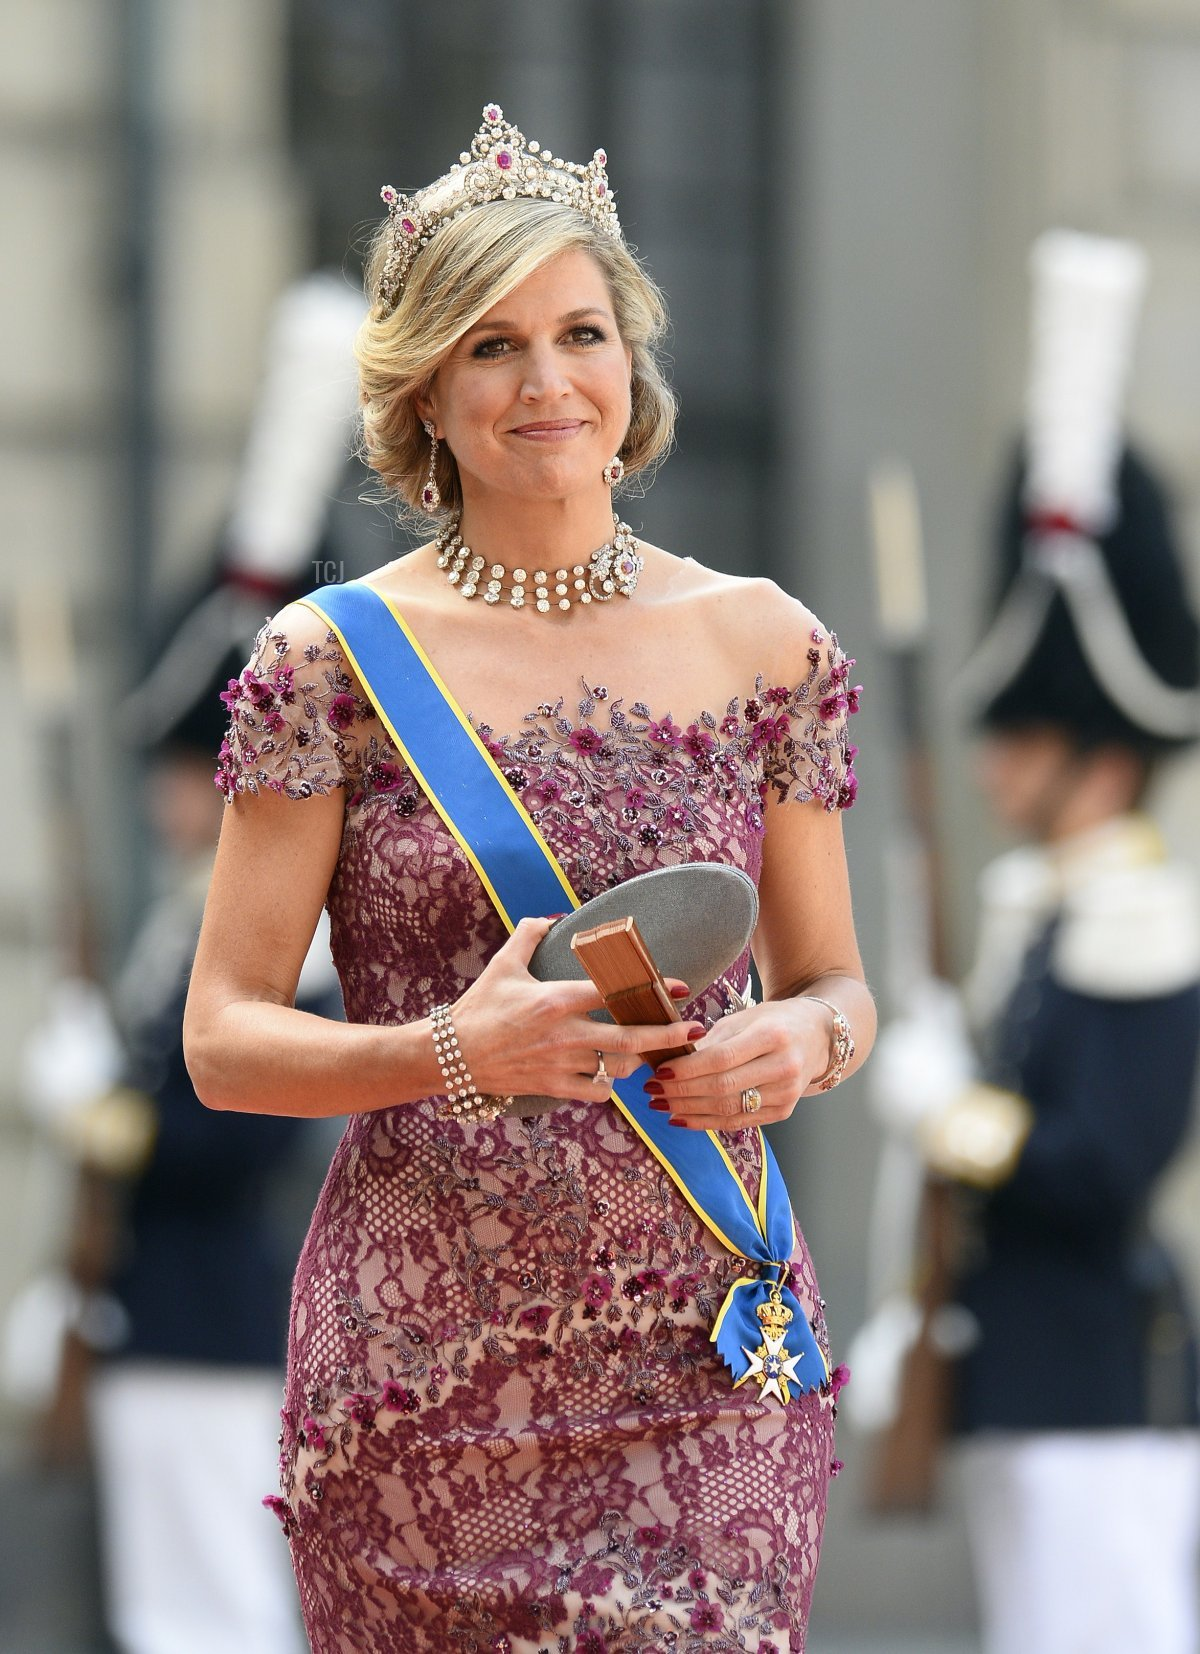 Queen Maxima of the Netherlands attends the wedding of Prince Carl Philip and Princess Sofia of Sweden, June 2015